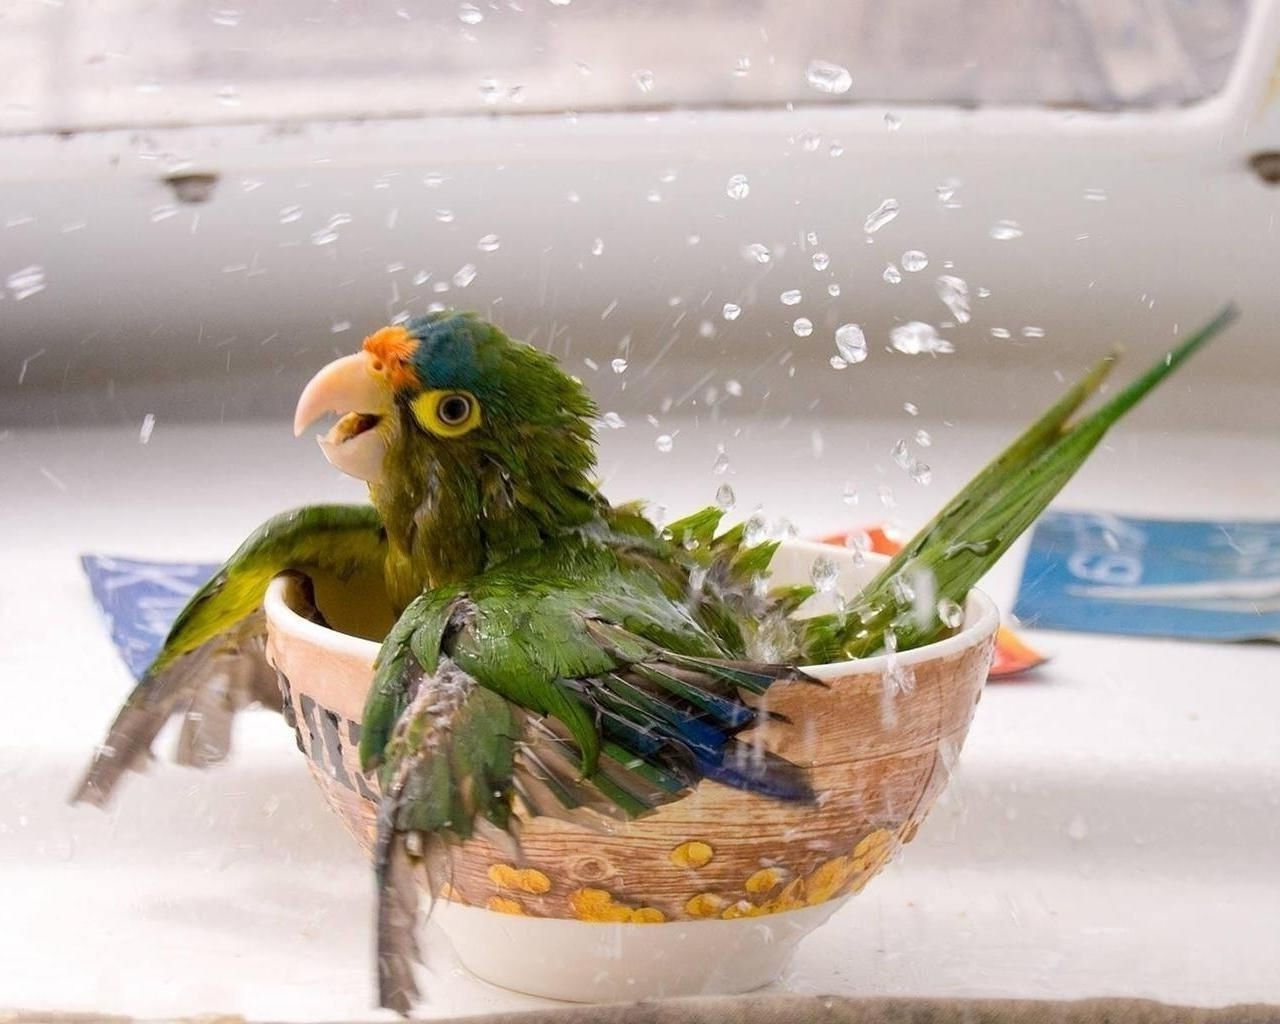 Wet in the parrot bowl